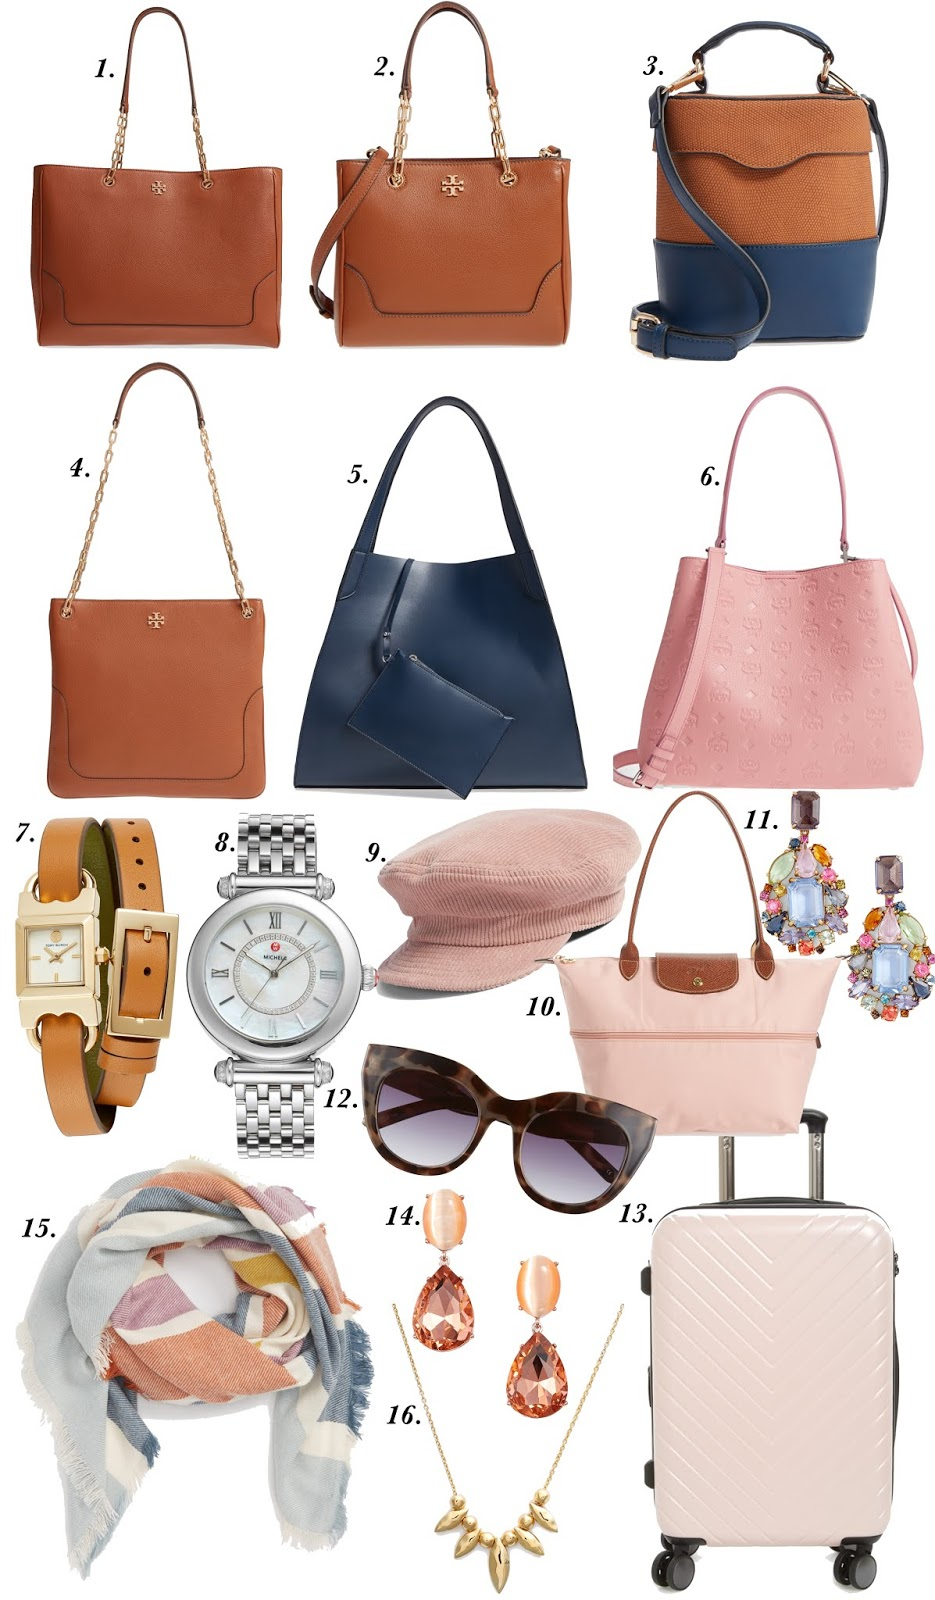 2018 Nordstrom Anniversary Sale: Accessories - Something Delightful Blog